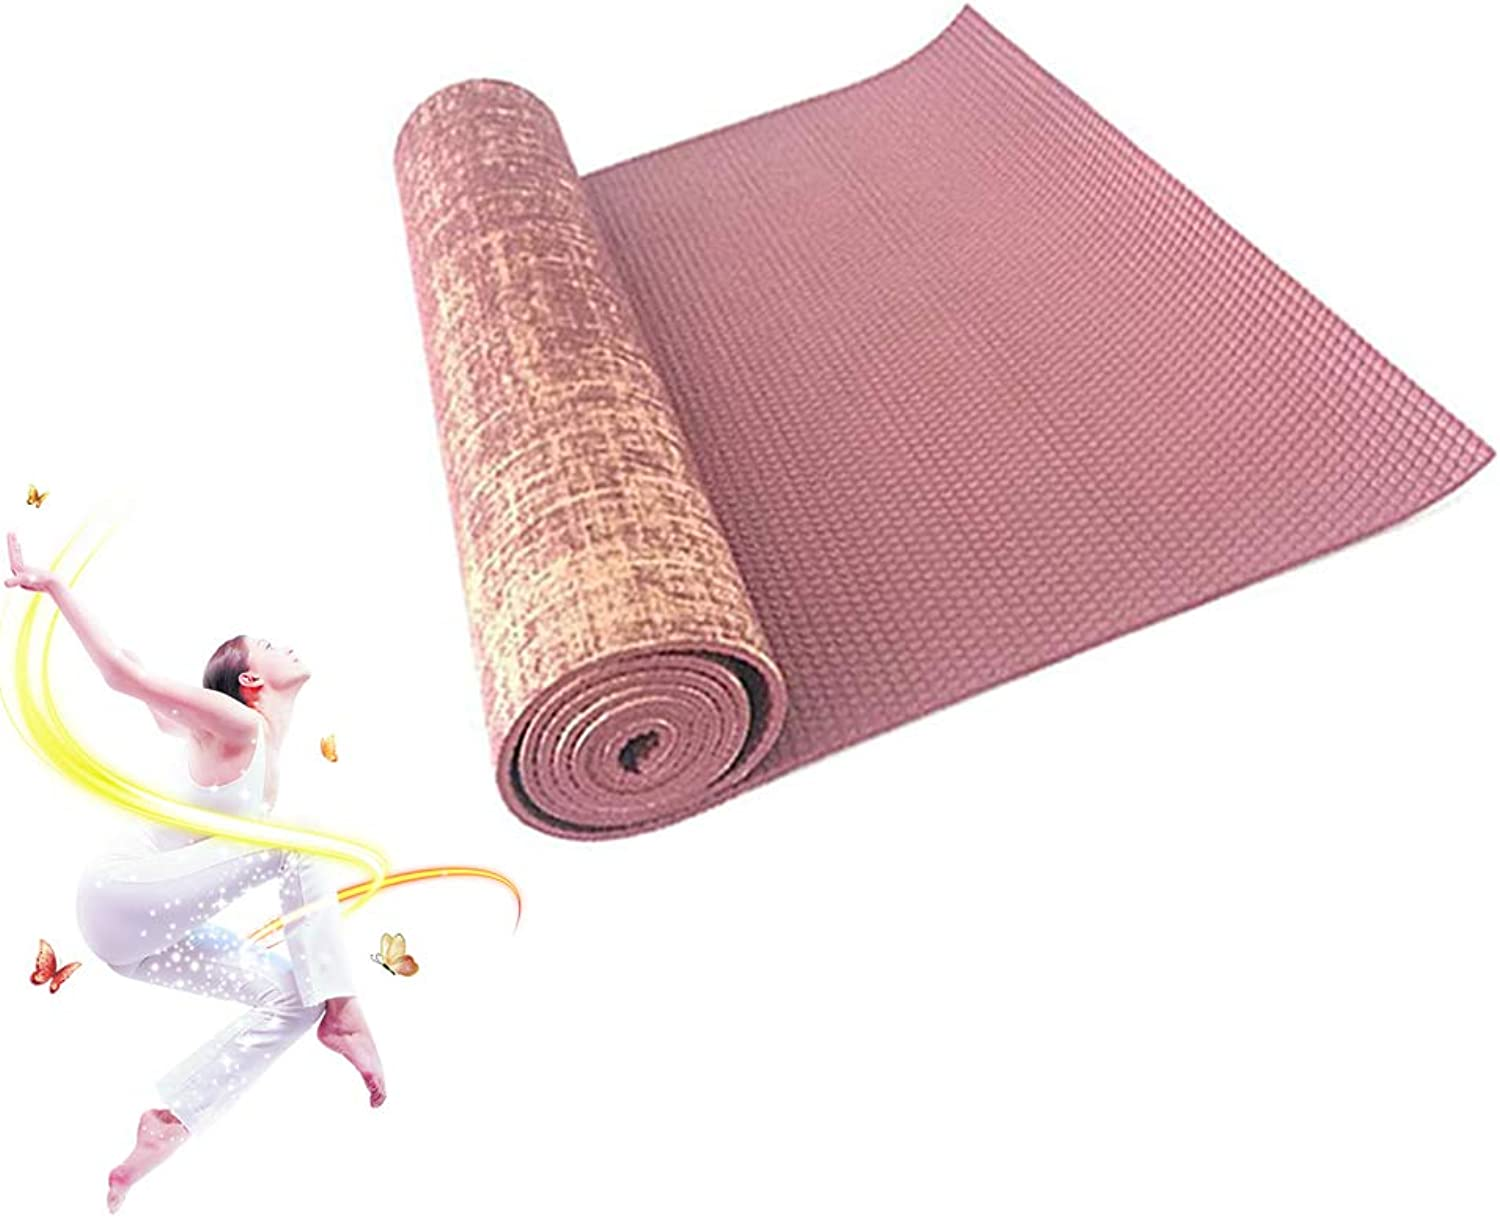 Yoga Mat 5mm Thick Exercise Fitness Workout Flax Mat Pilates Gym Suck Sweat Non-Slip 72inch x 24inch